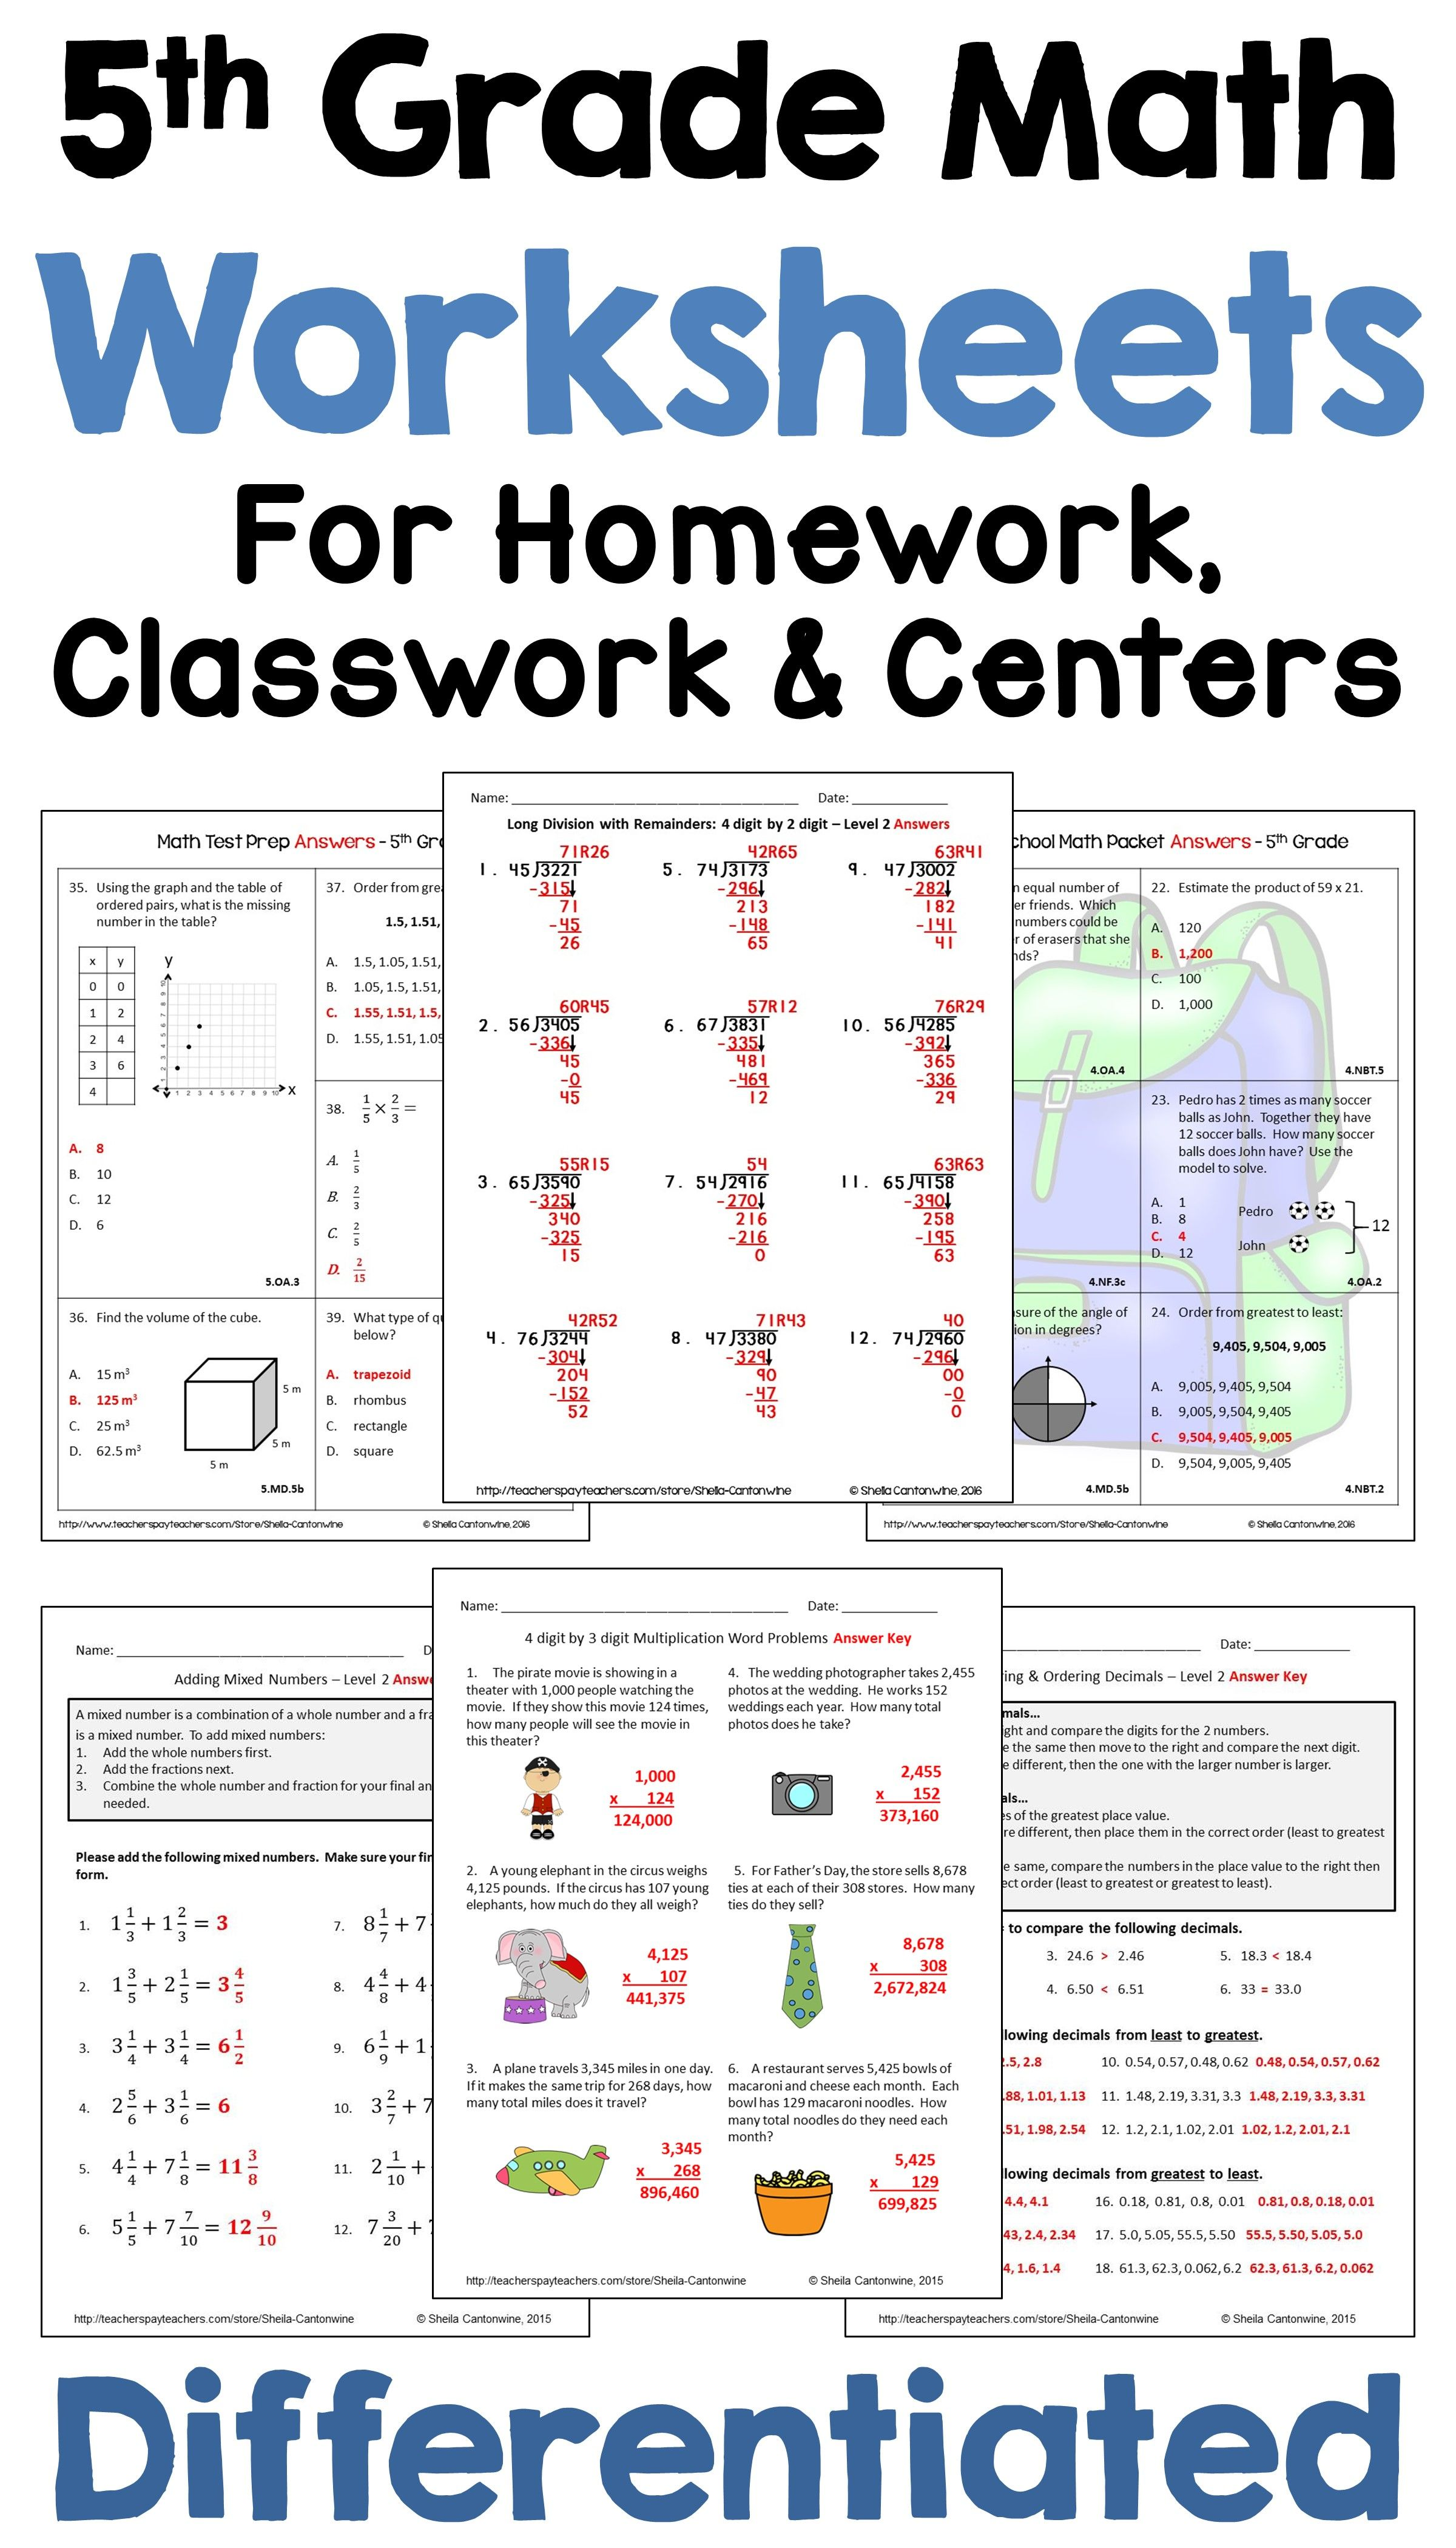 medium resolution of 5th Grade Math Differentiated Worksheets for Homework